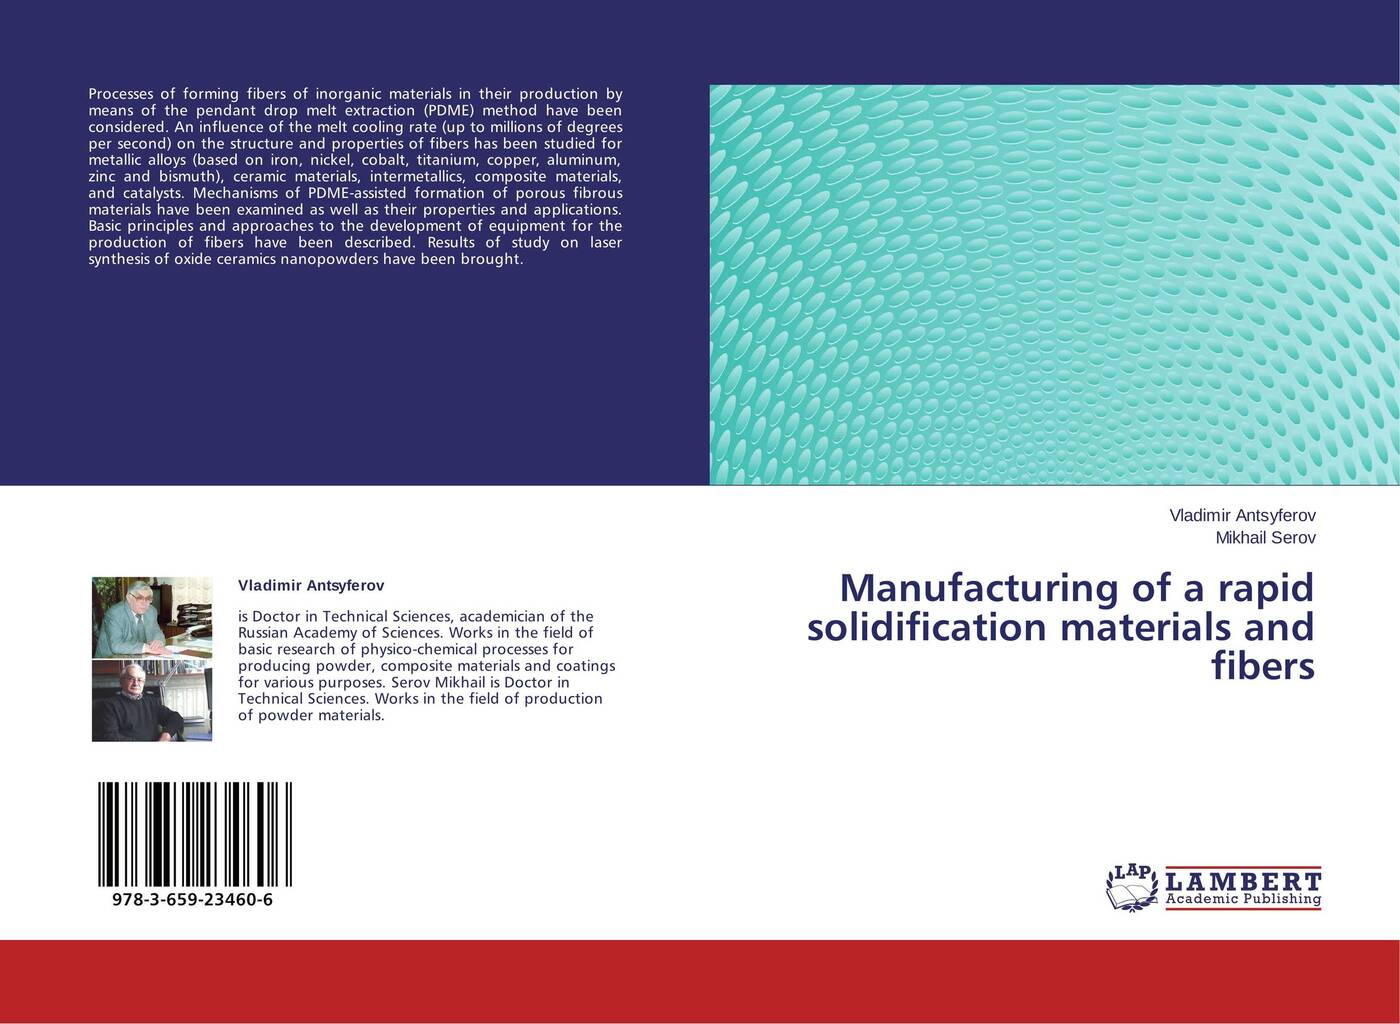 Vladimir Antsyferov and Mikhail Serov Manufacturing of a rapid solidification materials and fibers nicolas boyard heat transfer in polymer composite materials forming processes